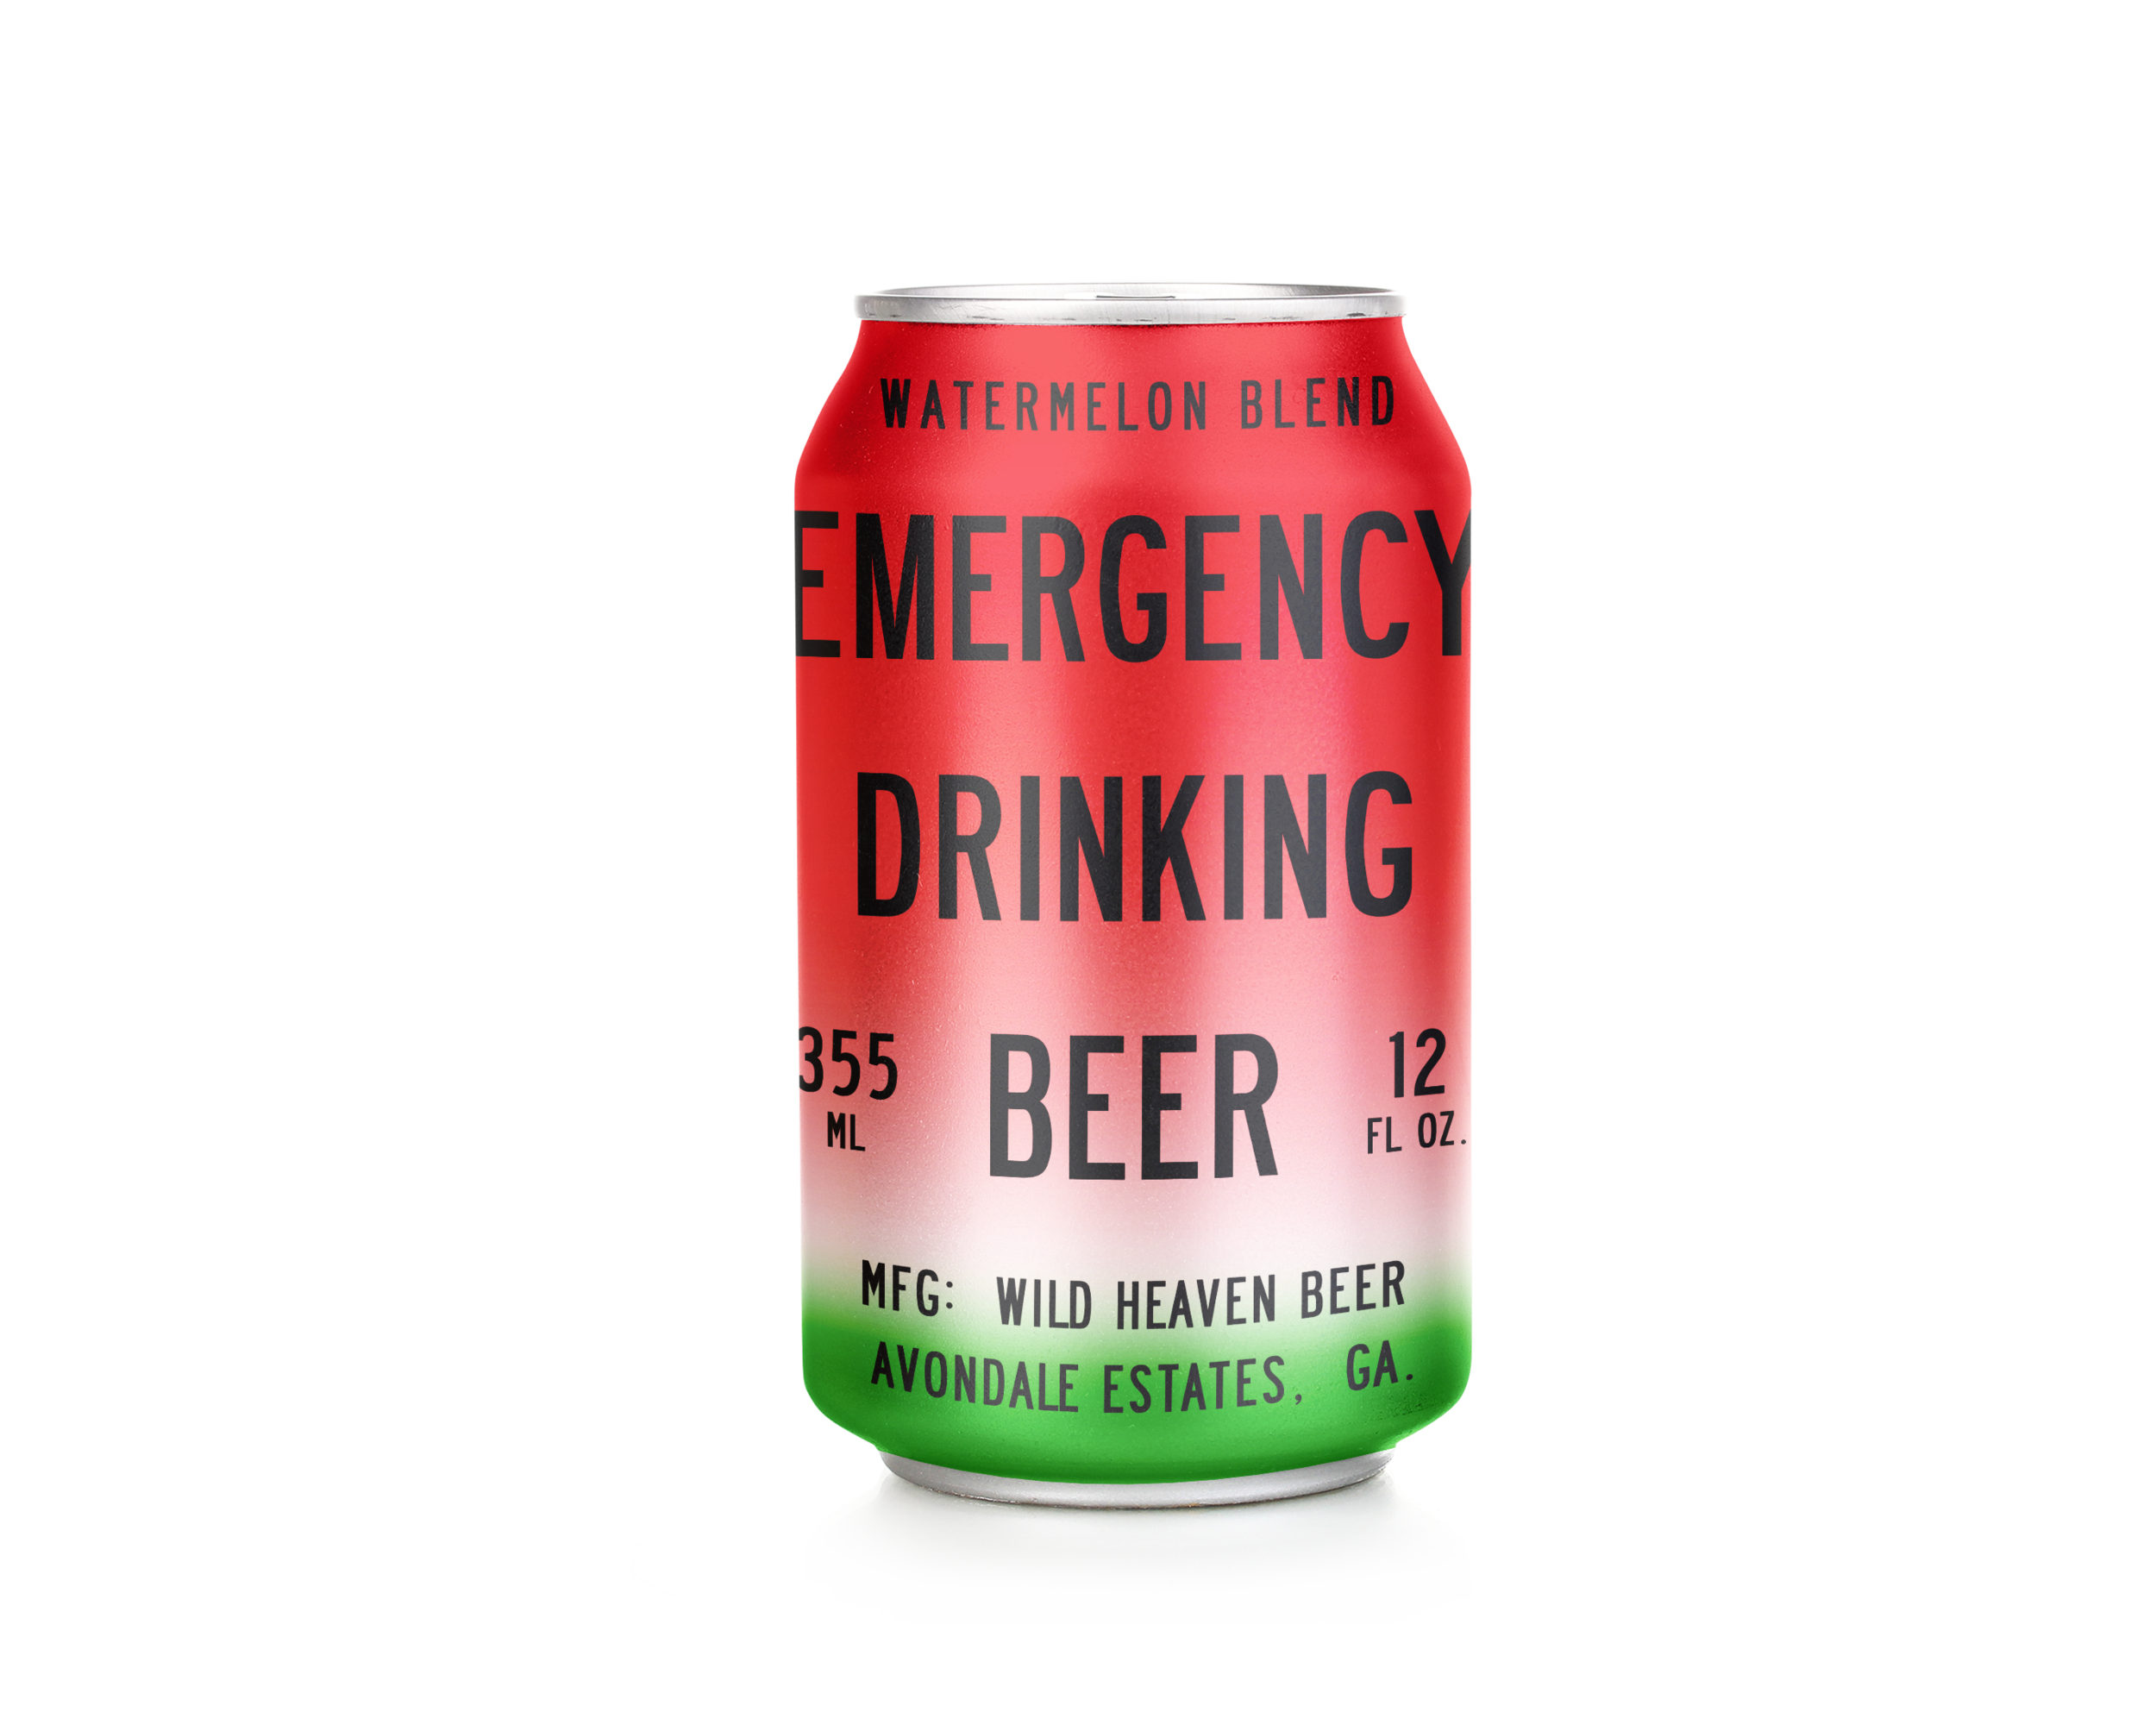 Emergency Drinking Beer Watermelon Blend - 4% ABVFruit BeerOur most popular beer, Emergency Drinking Beer plus fresh juiced watermelons. The perfect crisp summer beer, our team hand juices watermelons to create an authentic watermelon flavor, with nothing artificial. Available June-August.